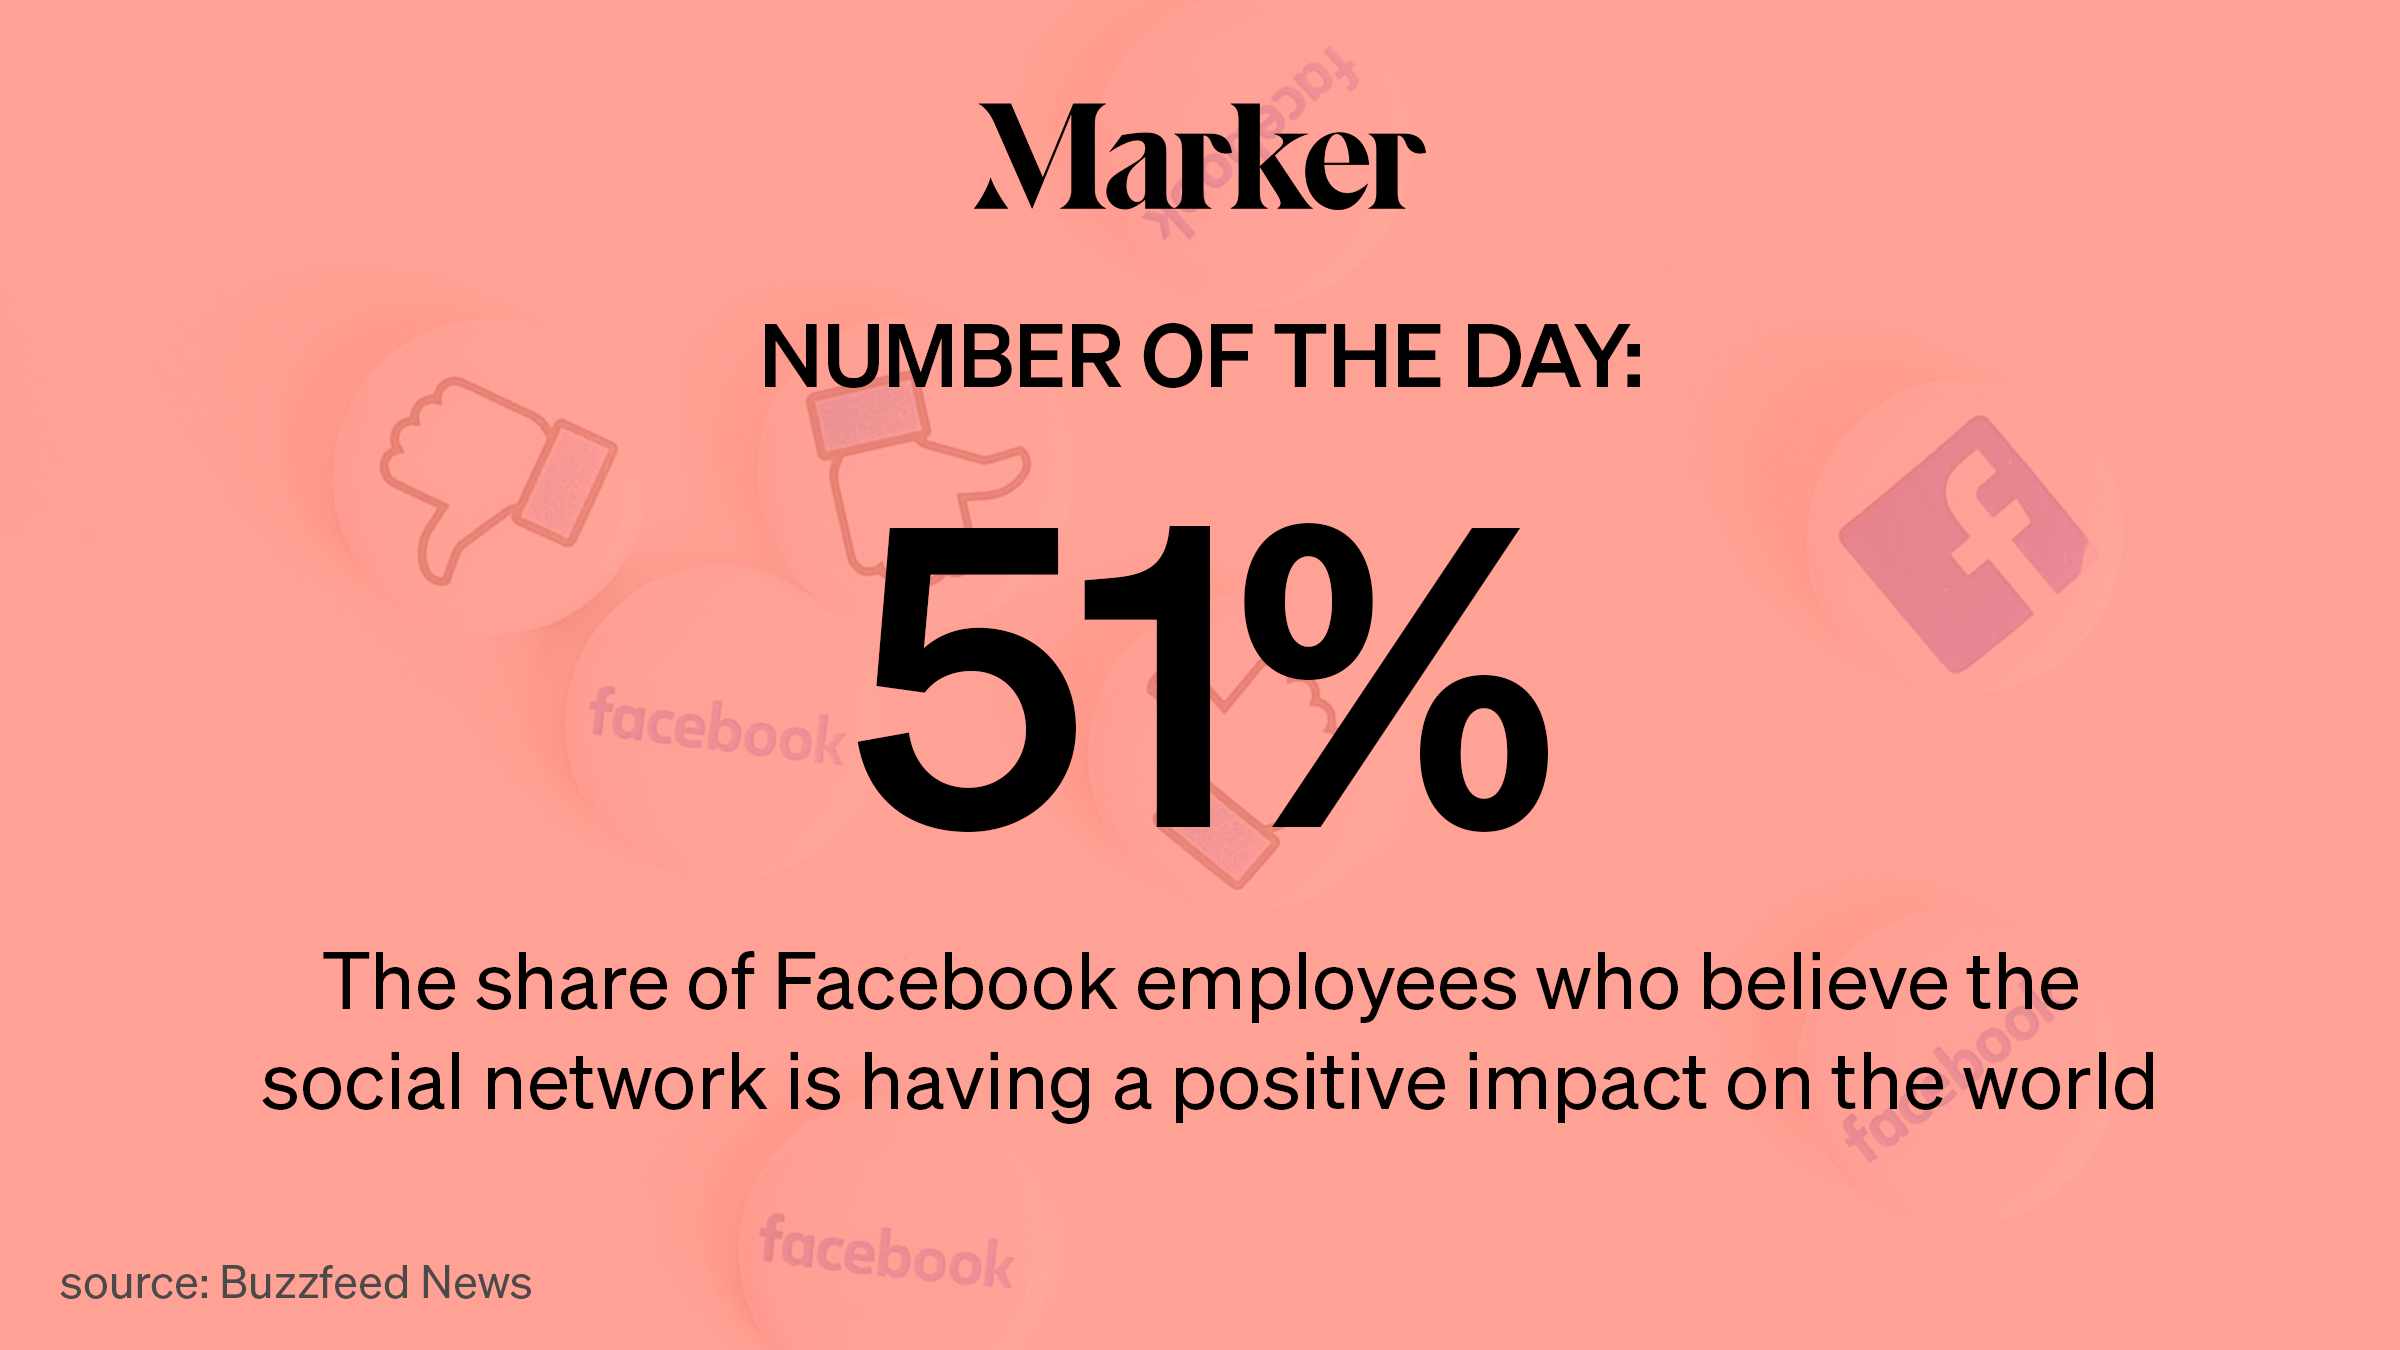 51%—The share of Facebook employees who believe the social network is having a positive impact on the world